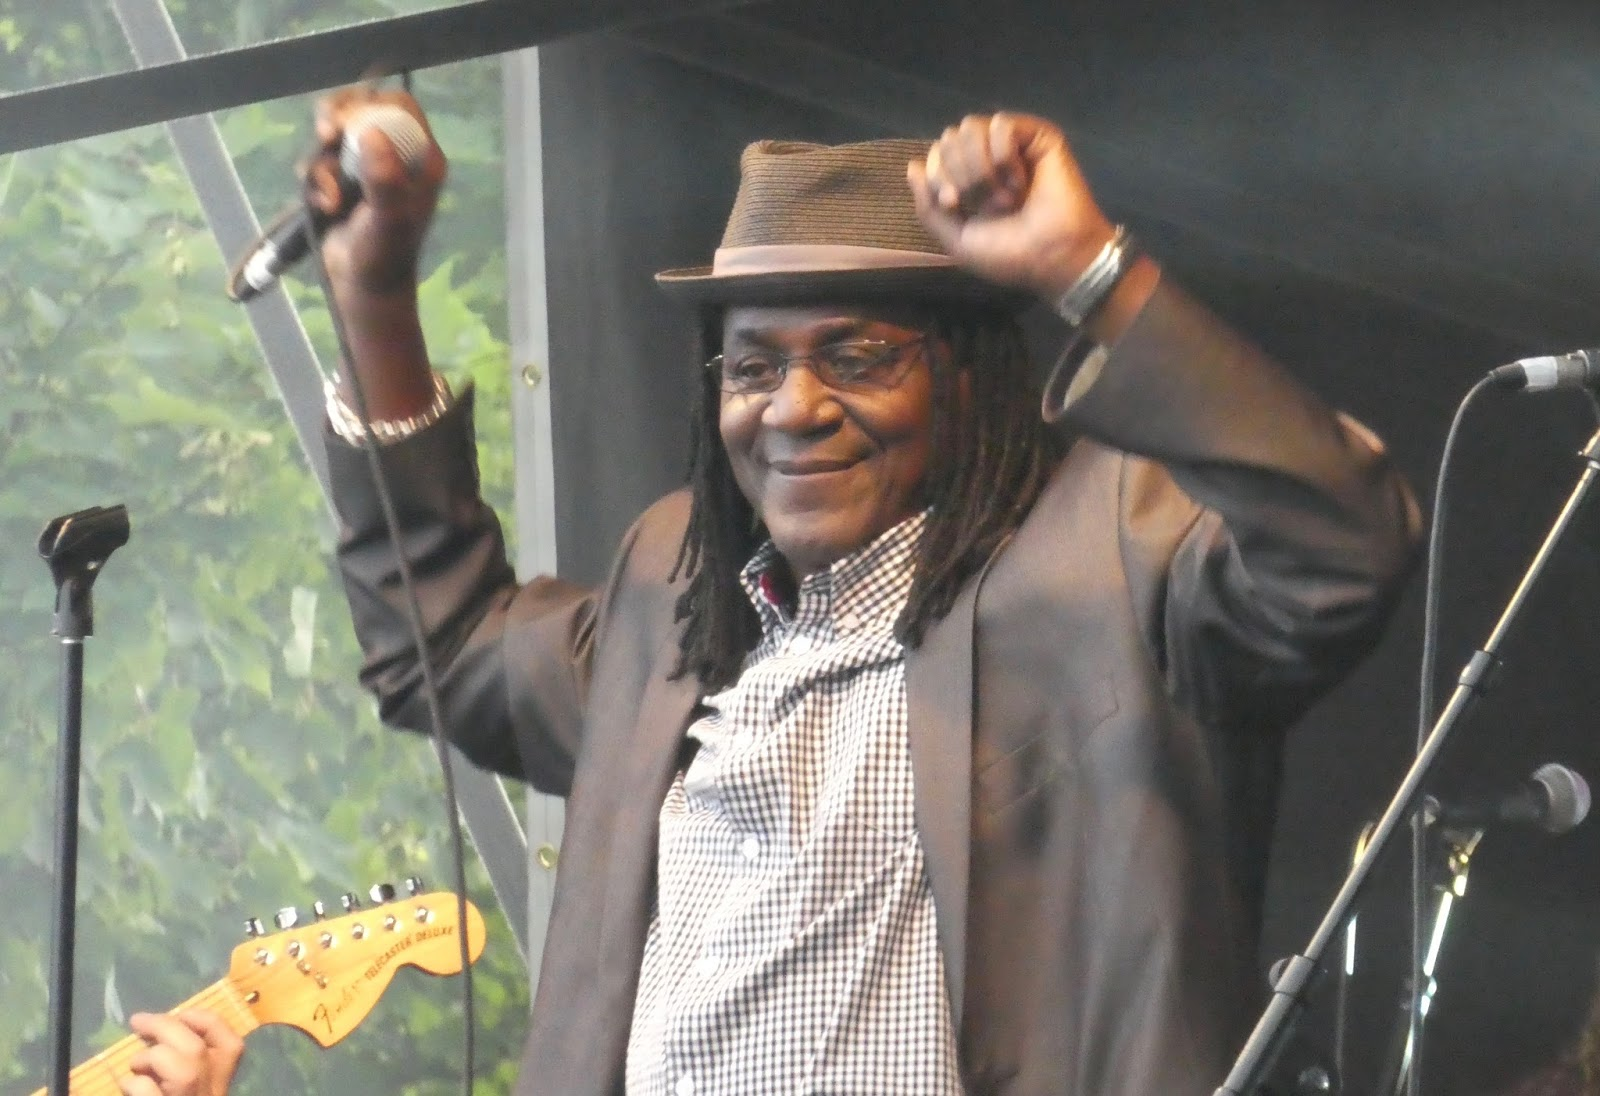 Corbridge Festival 2016 - Neville Staple Band